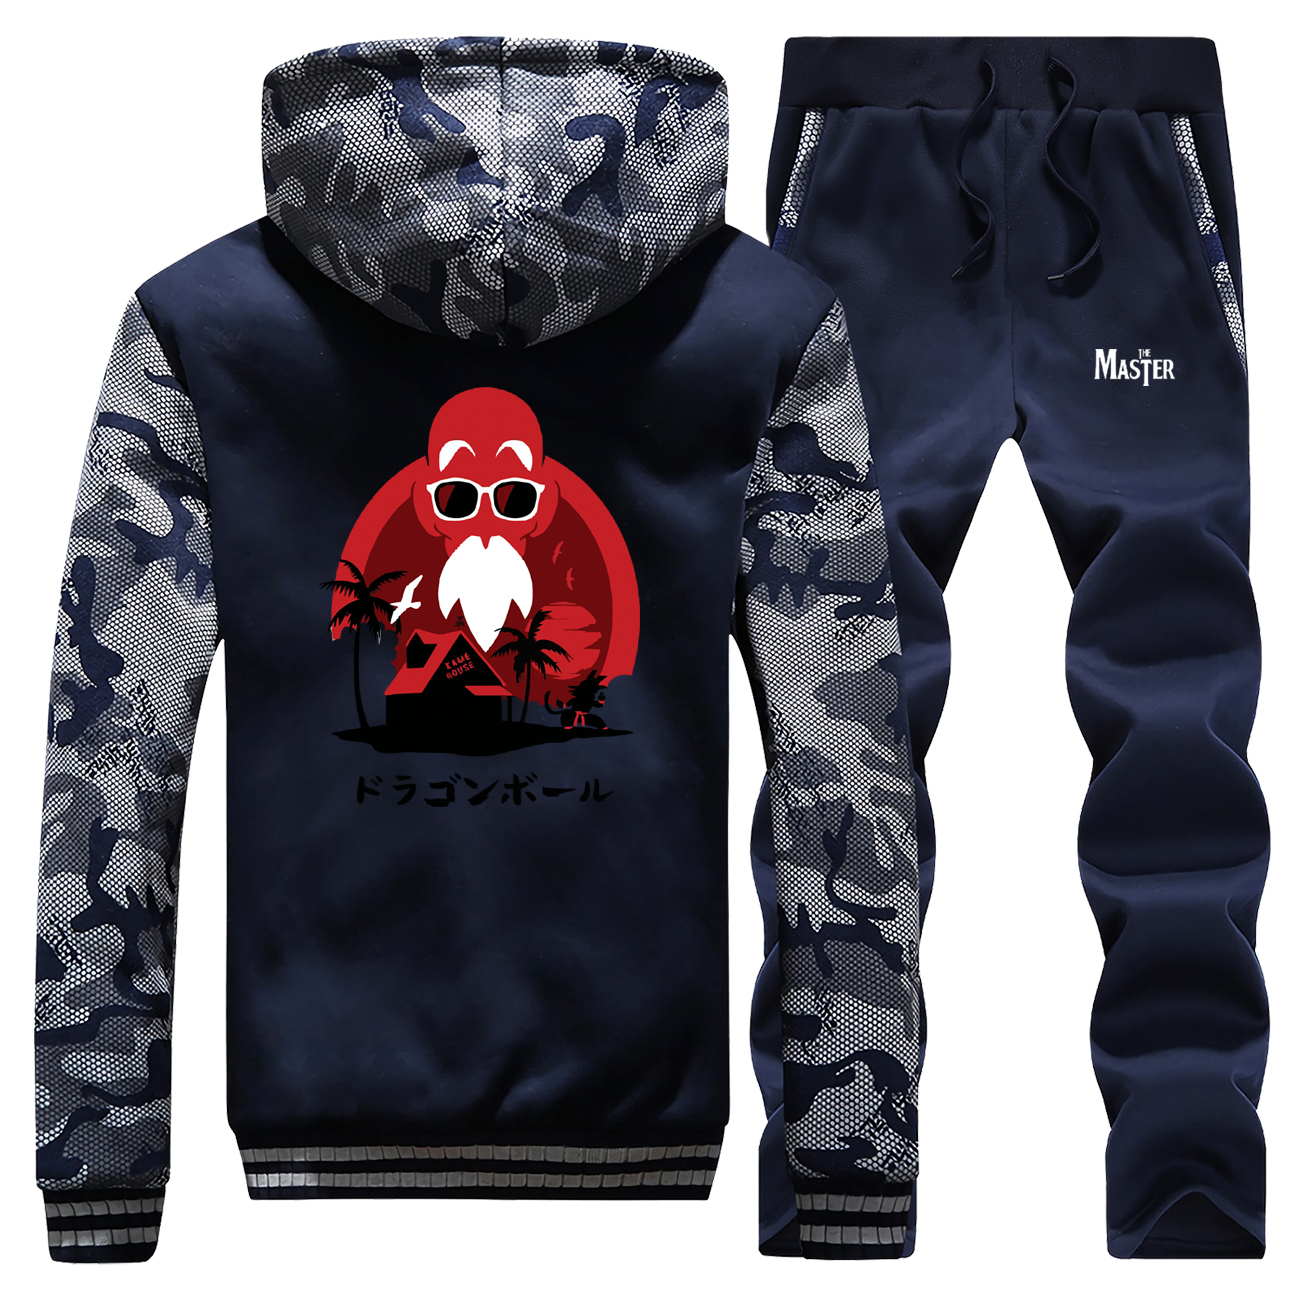 2019 New Winter Casual Men Sporting Set Winter Thick Fleece Hooded Jacket + Pants 2Piece Set Warm Suit Clothing